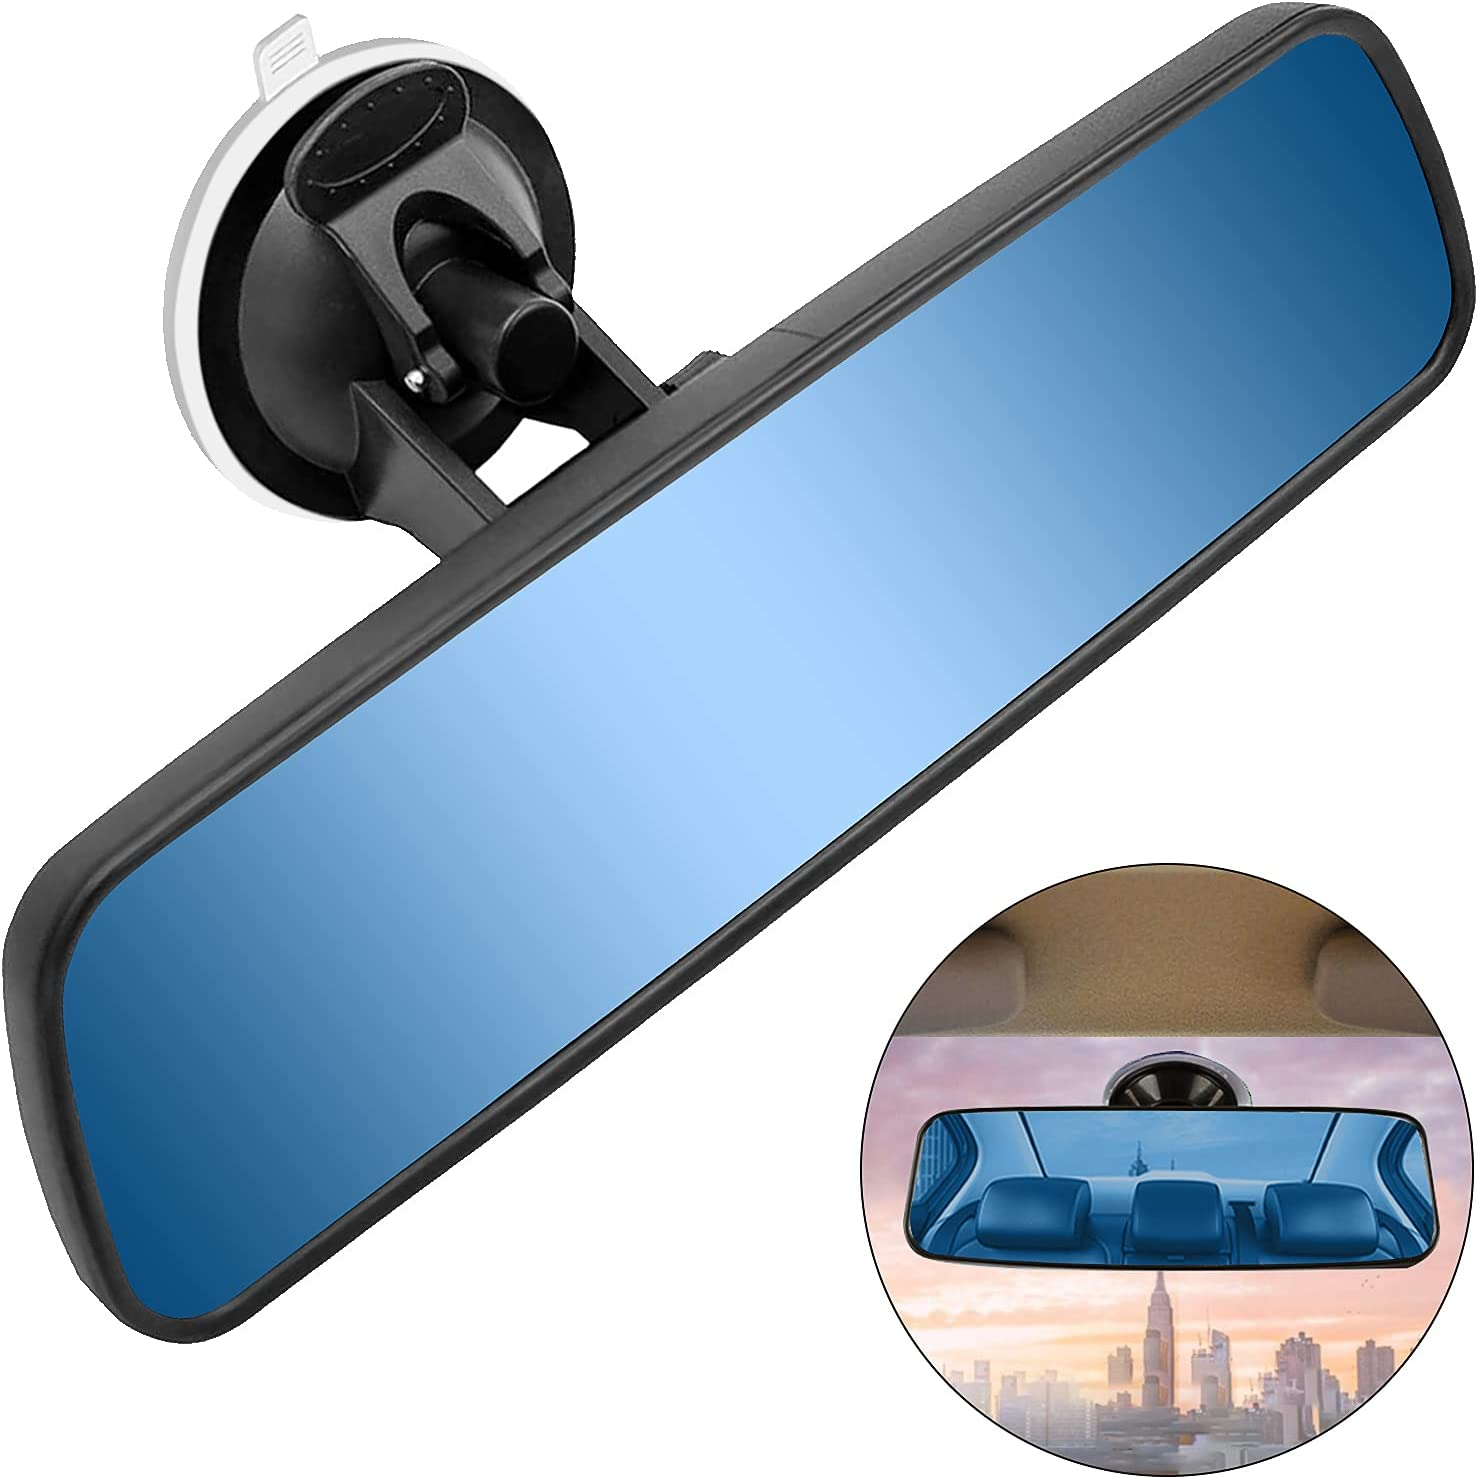 Buy Rear View Mirror, Suction Cup Hd Panoramic Car Rearview Mirror ...